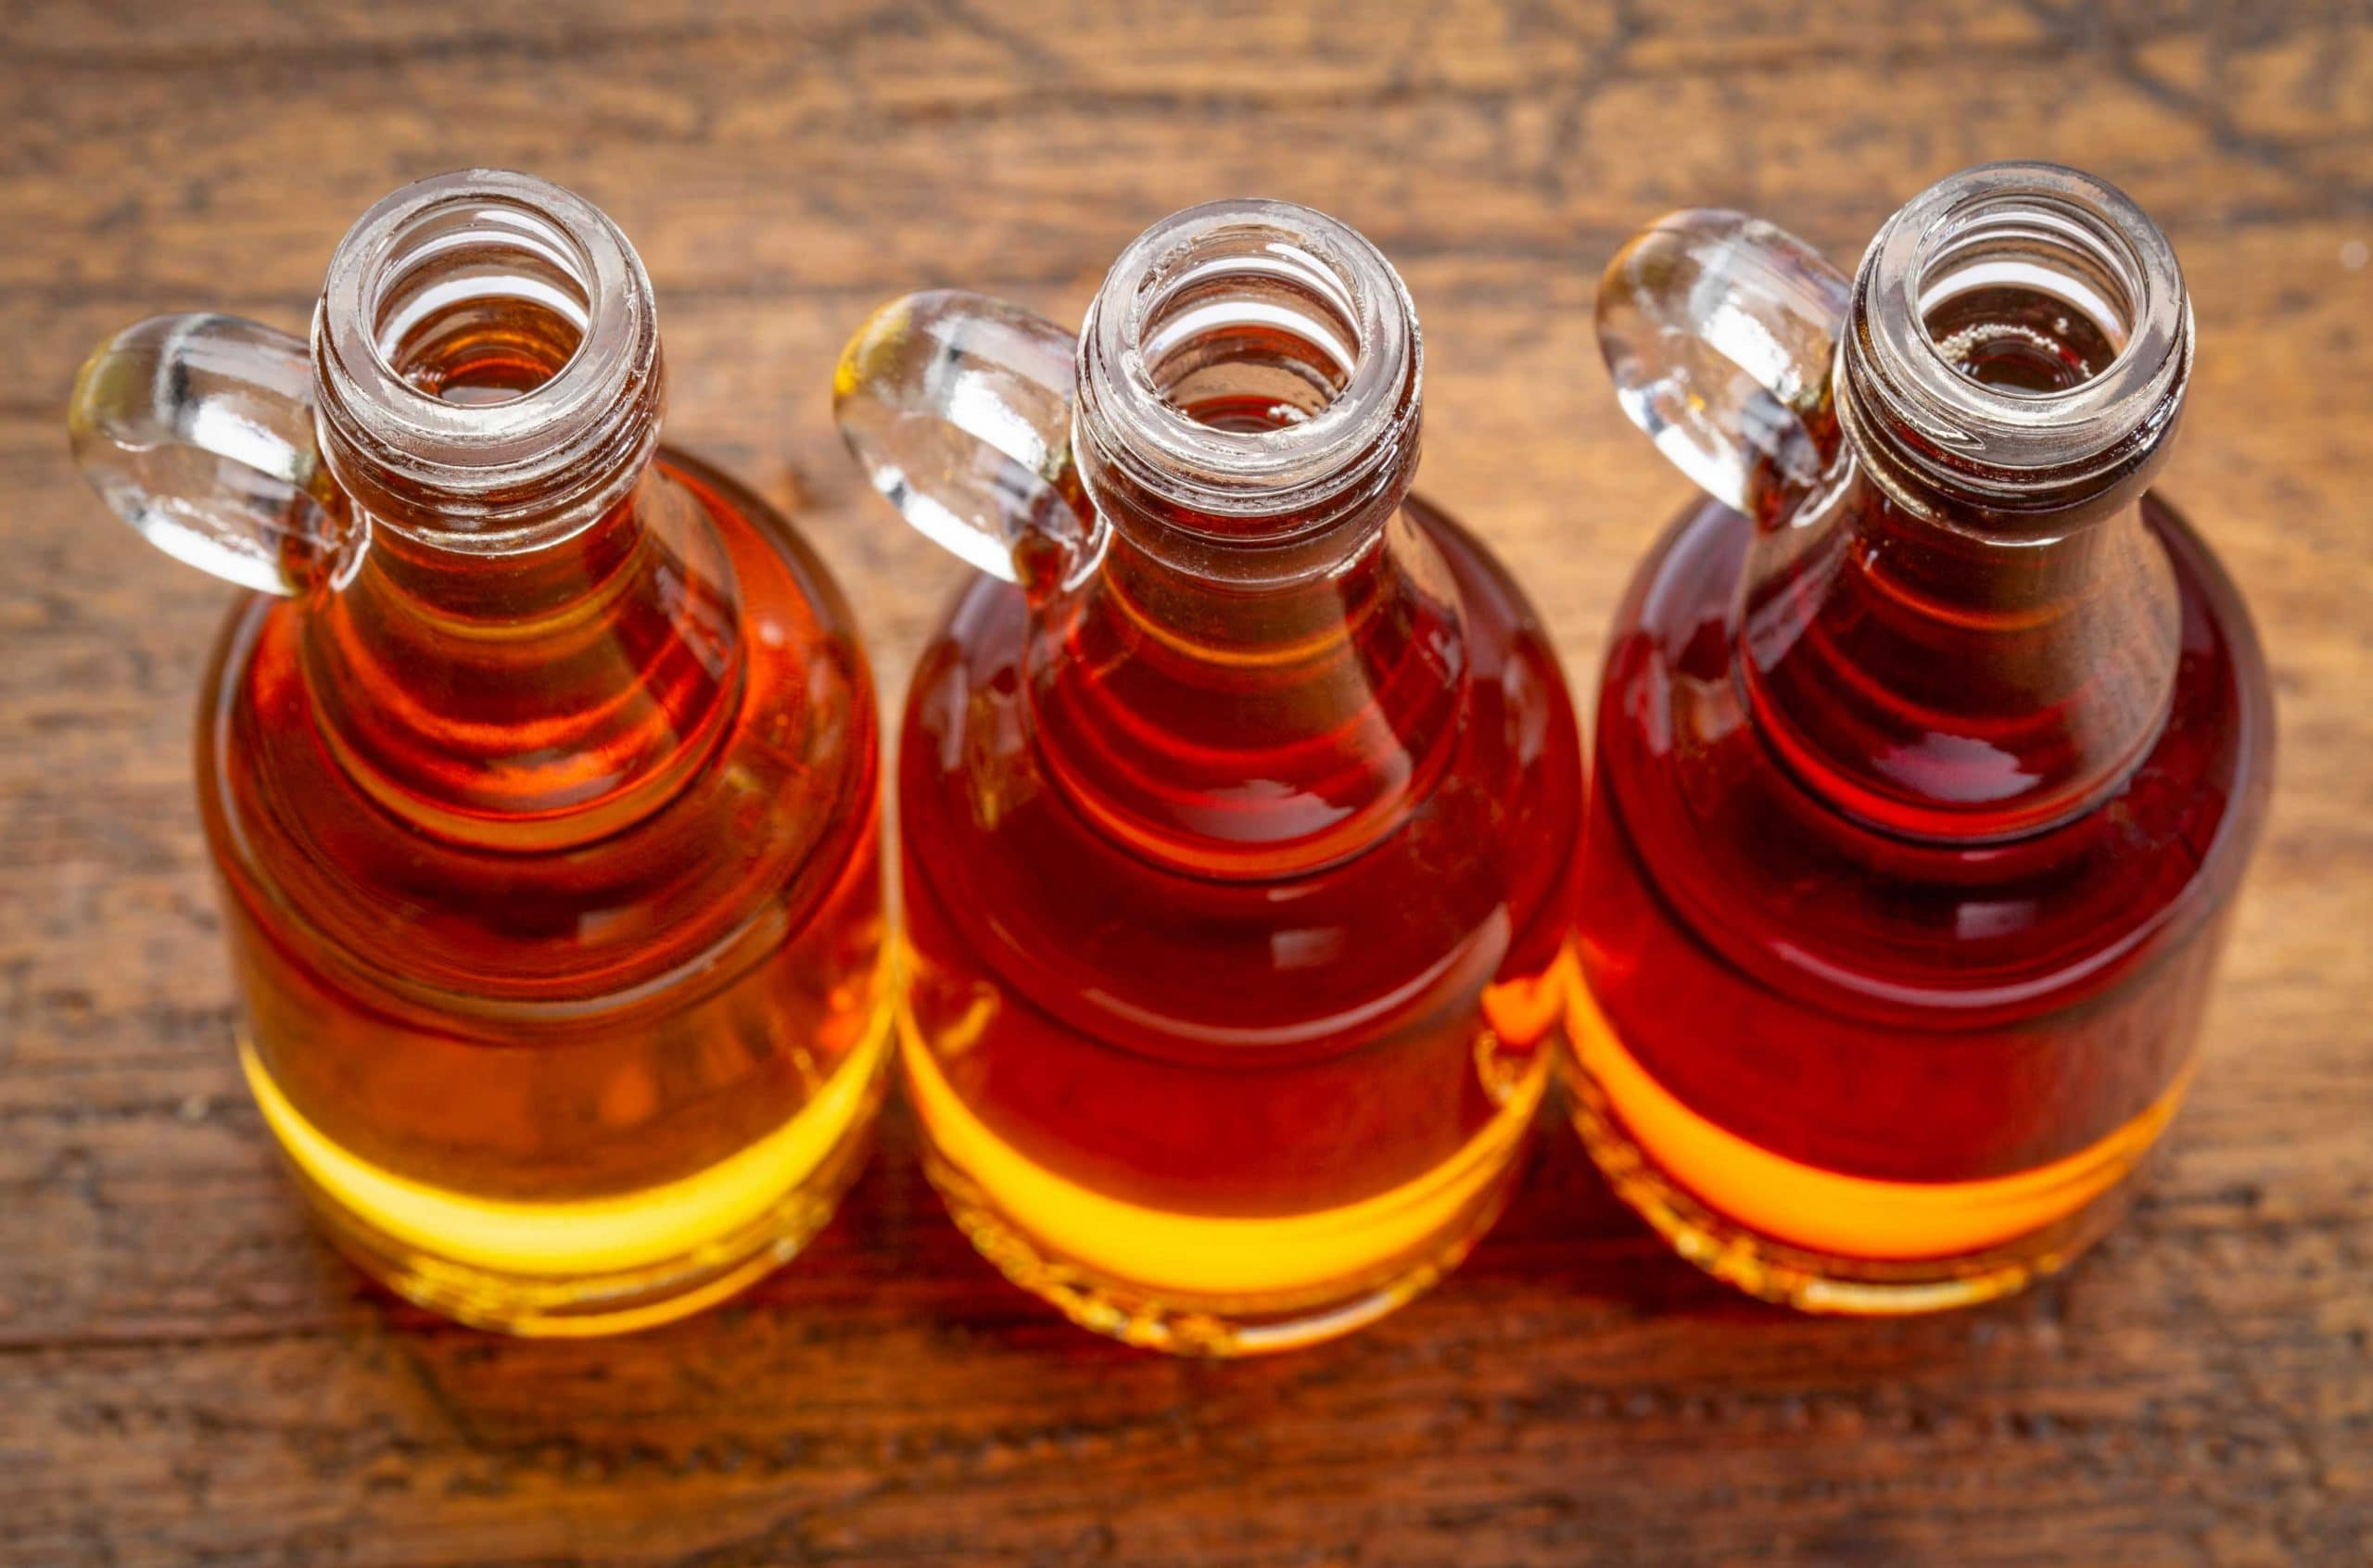 Photo of three small glass jugs of maple syrup in a row on a wooden surface.